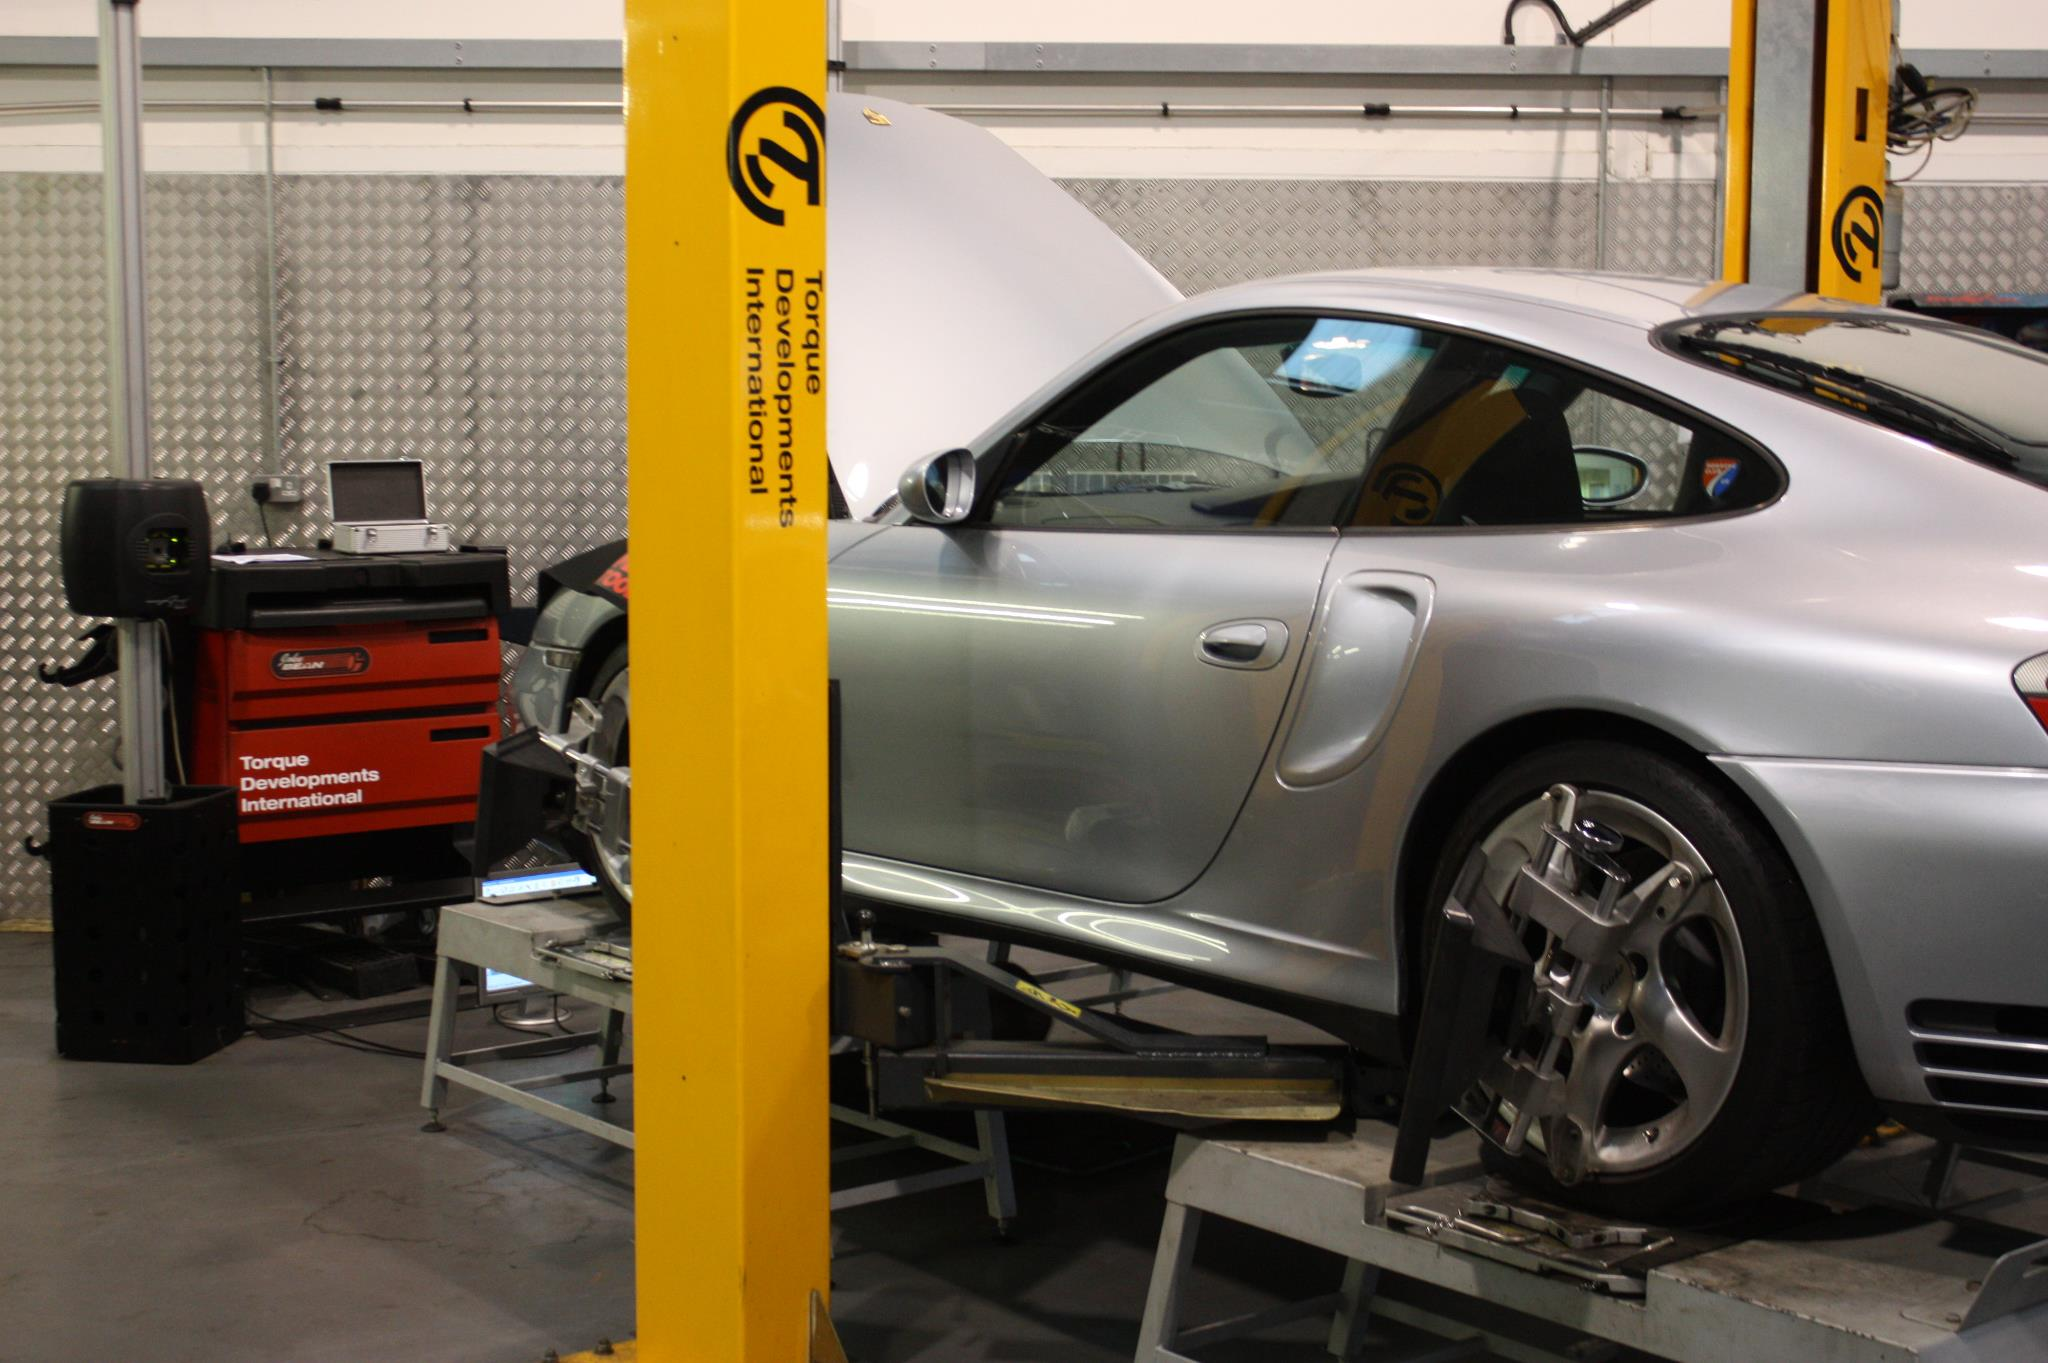 Porsche 996 Turbo Dynamic Handling Upgrade